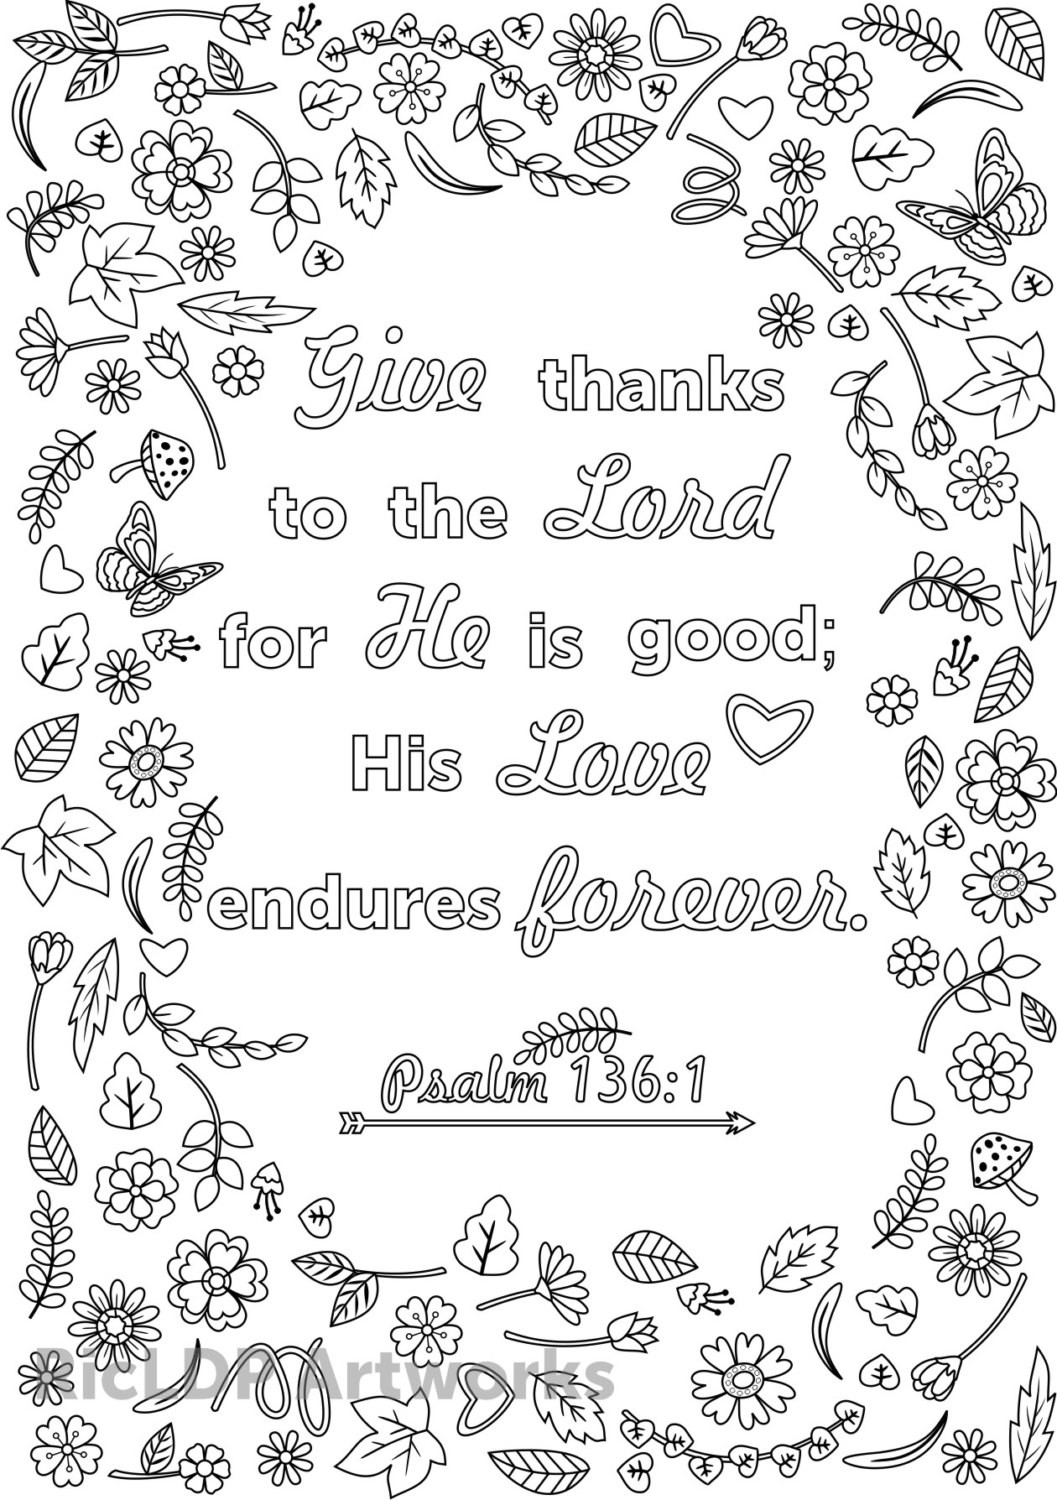 Bible Verses Coloring Pages For Adults  Three Bible Verse Coloring Pages for Adults Printable